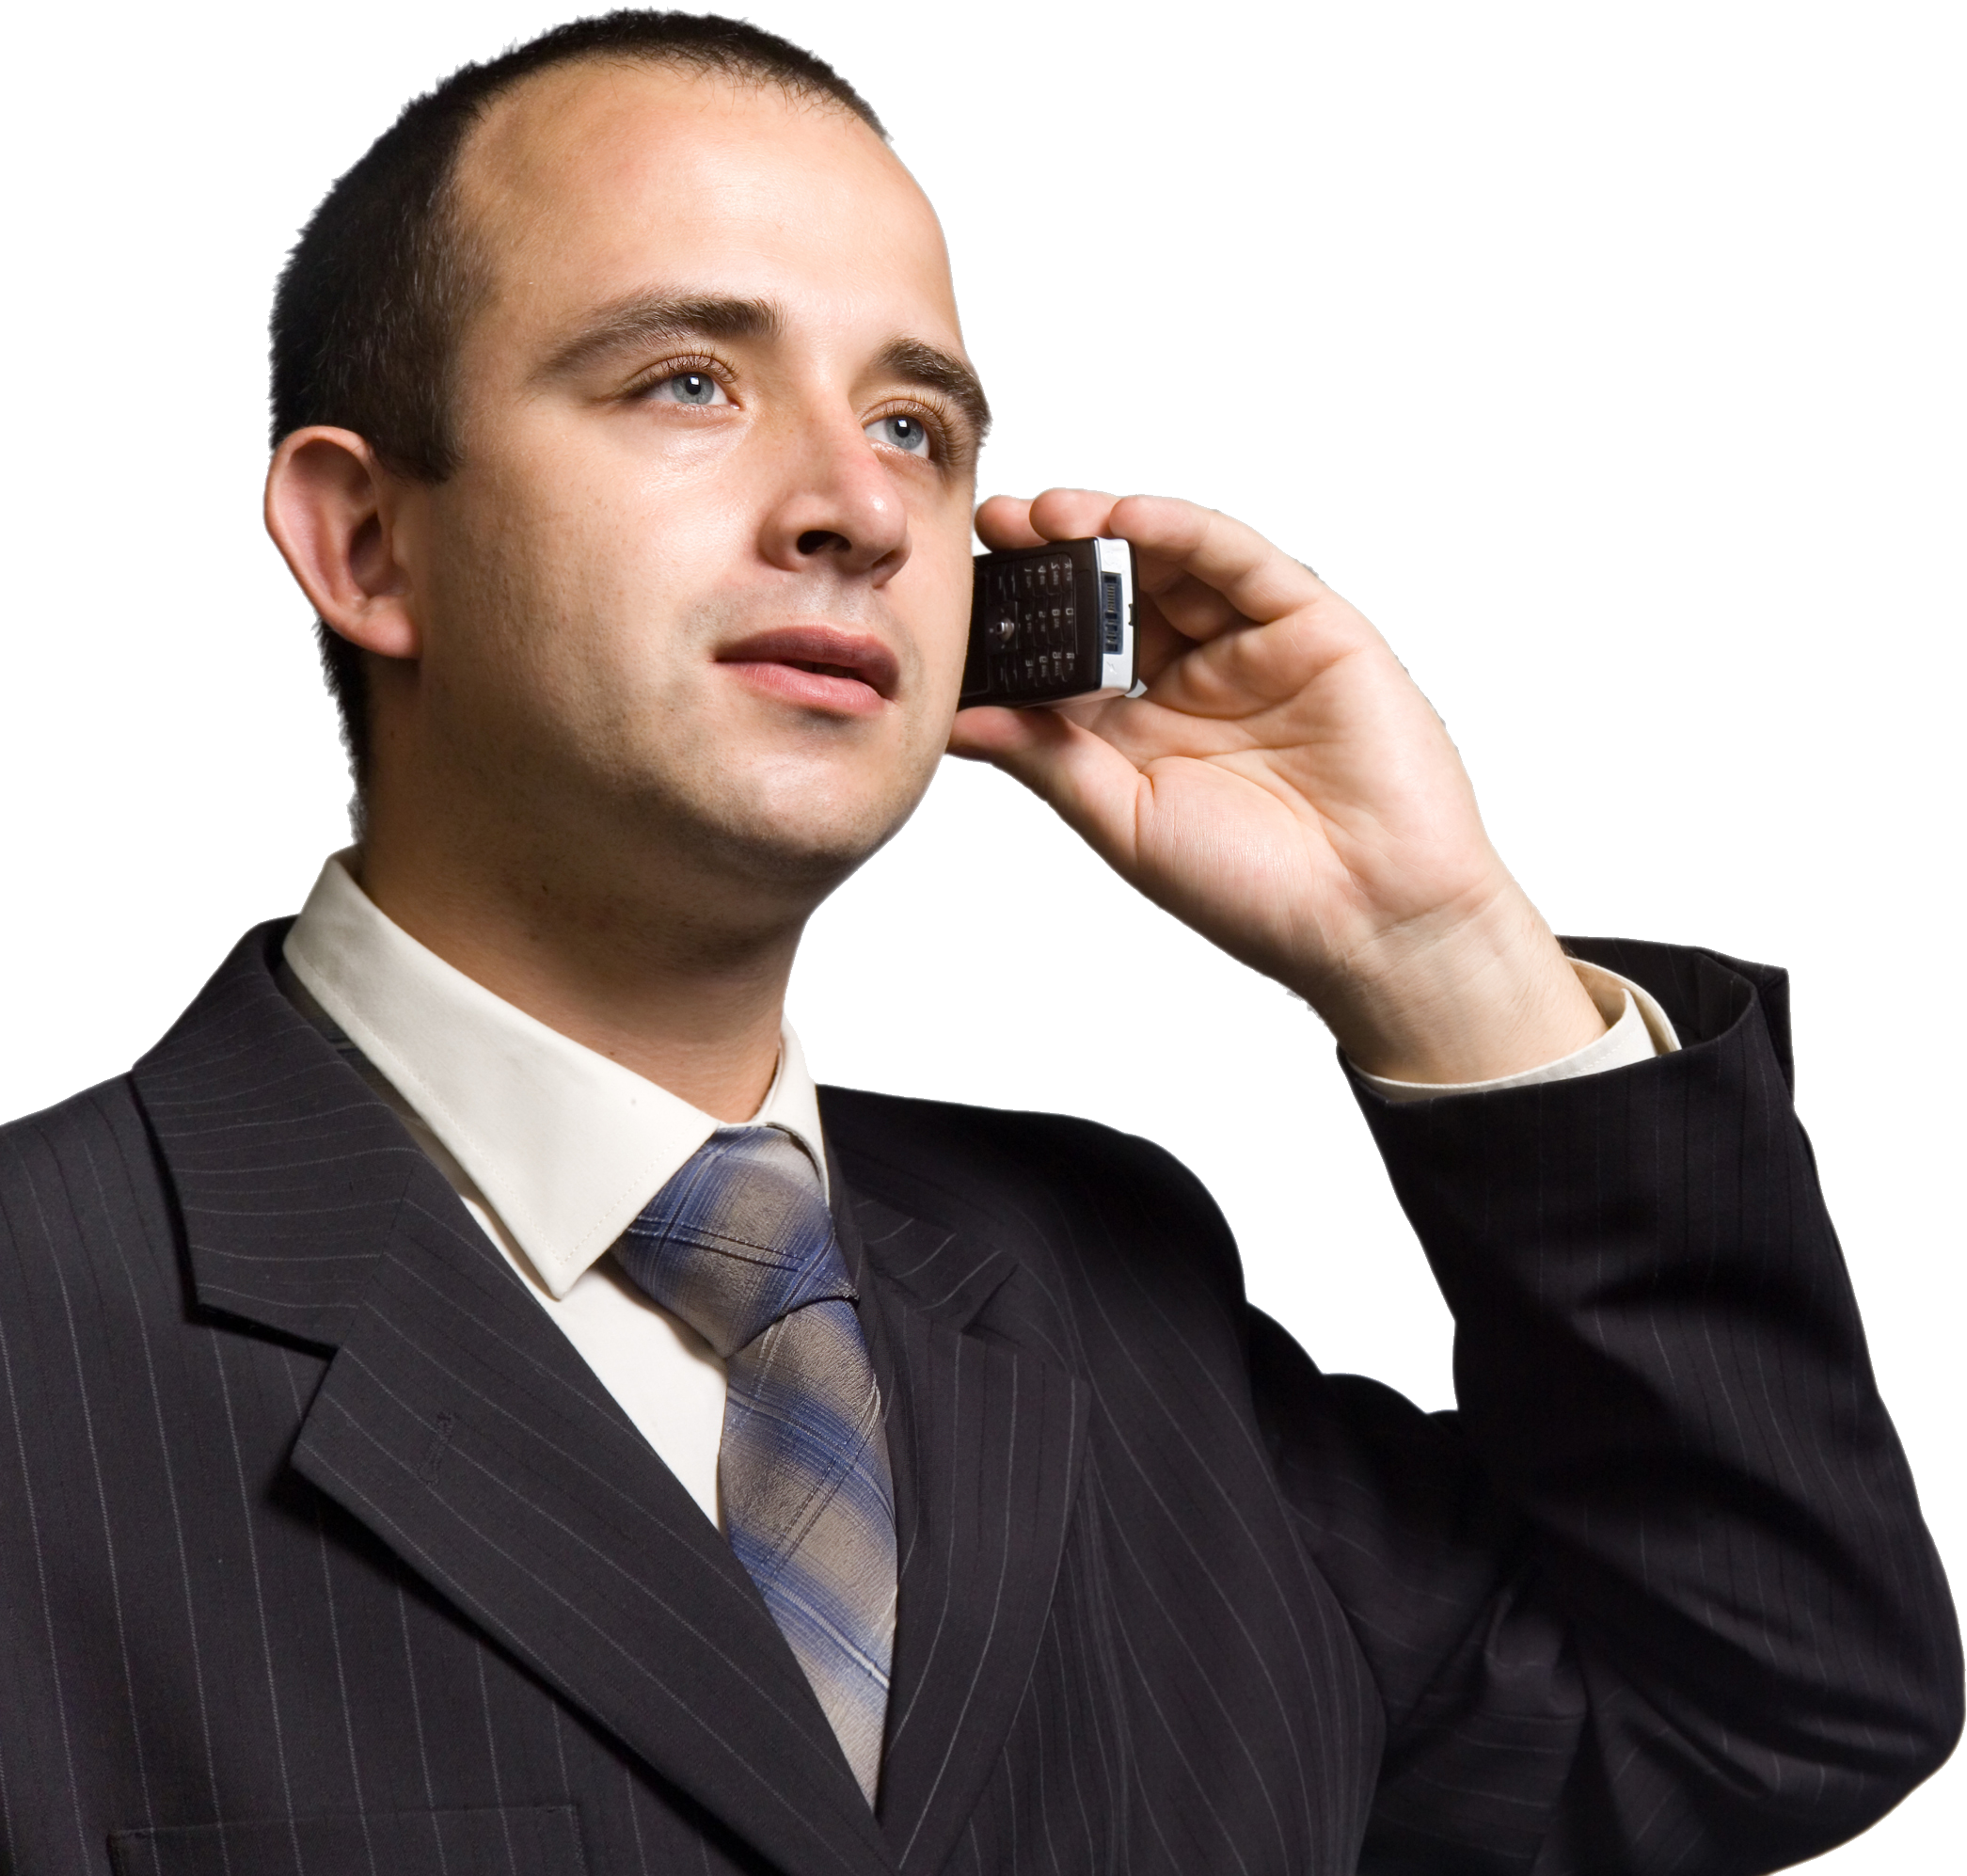 Businessman on the phone png. Image